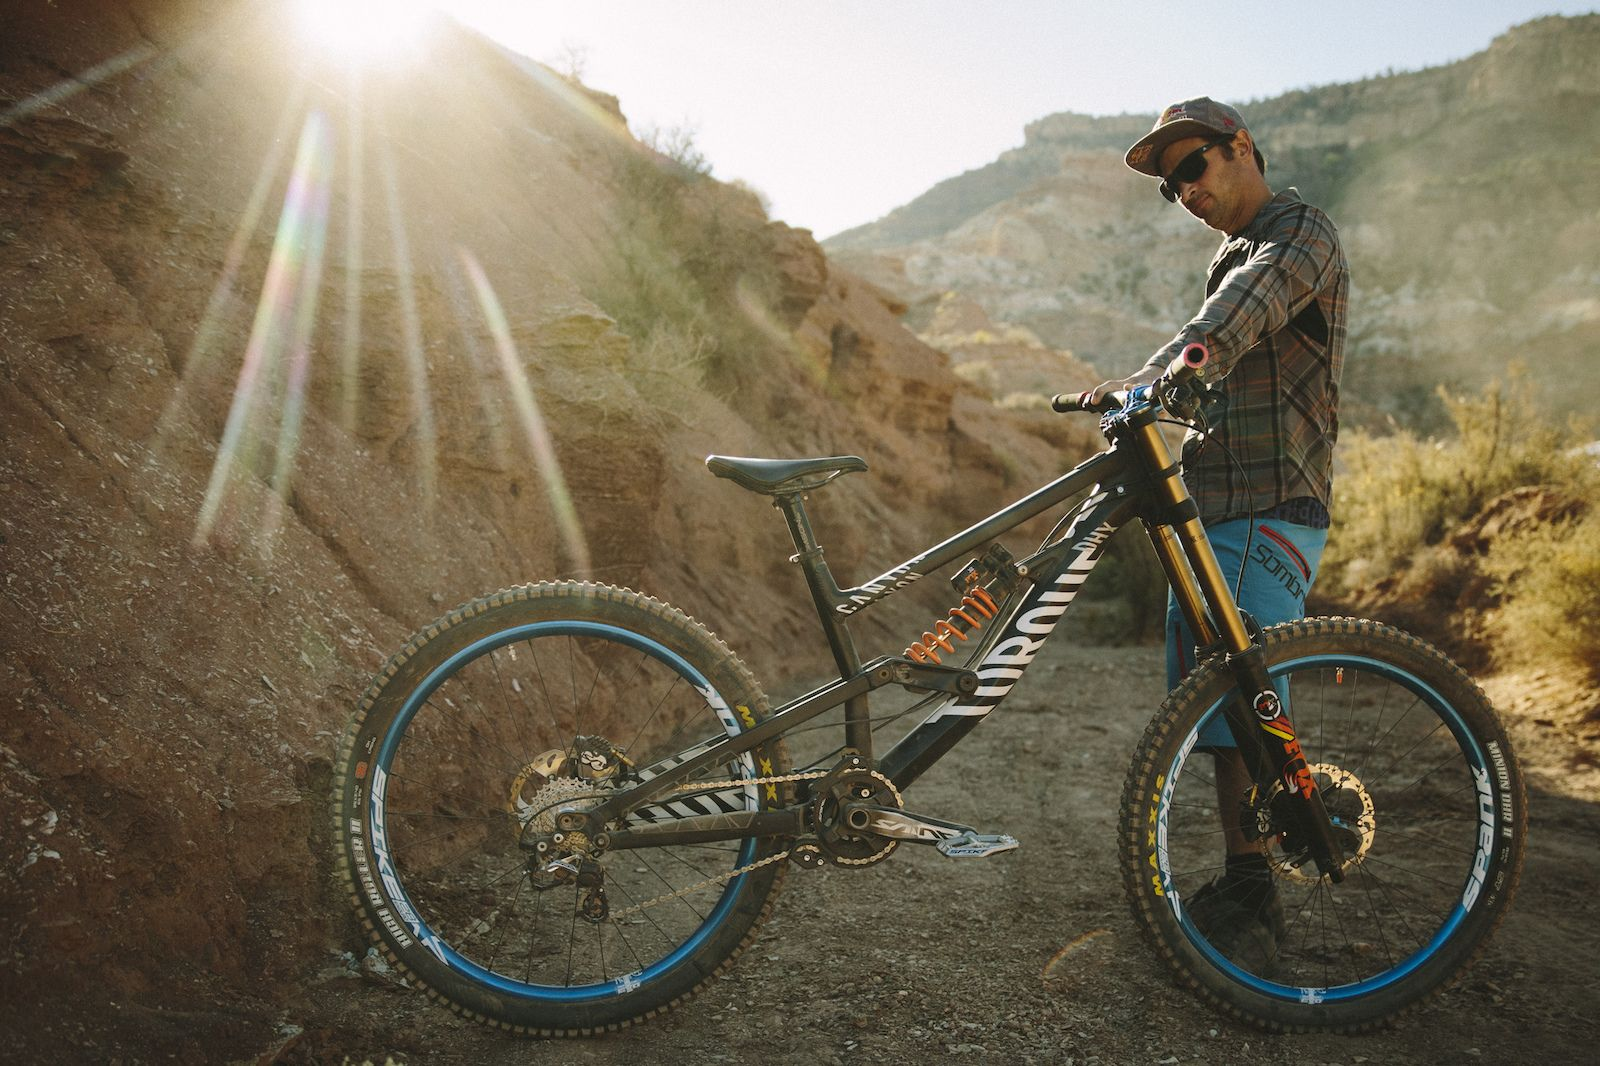 Want. Want. Want. It's like the ultimate MTB wish list. Check out what the pros, including Spank rider Darren Berrecloth, entrusted to get them down the mountain at this year's RedBull Rampage in Virgin, Utah USA.